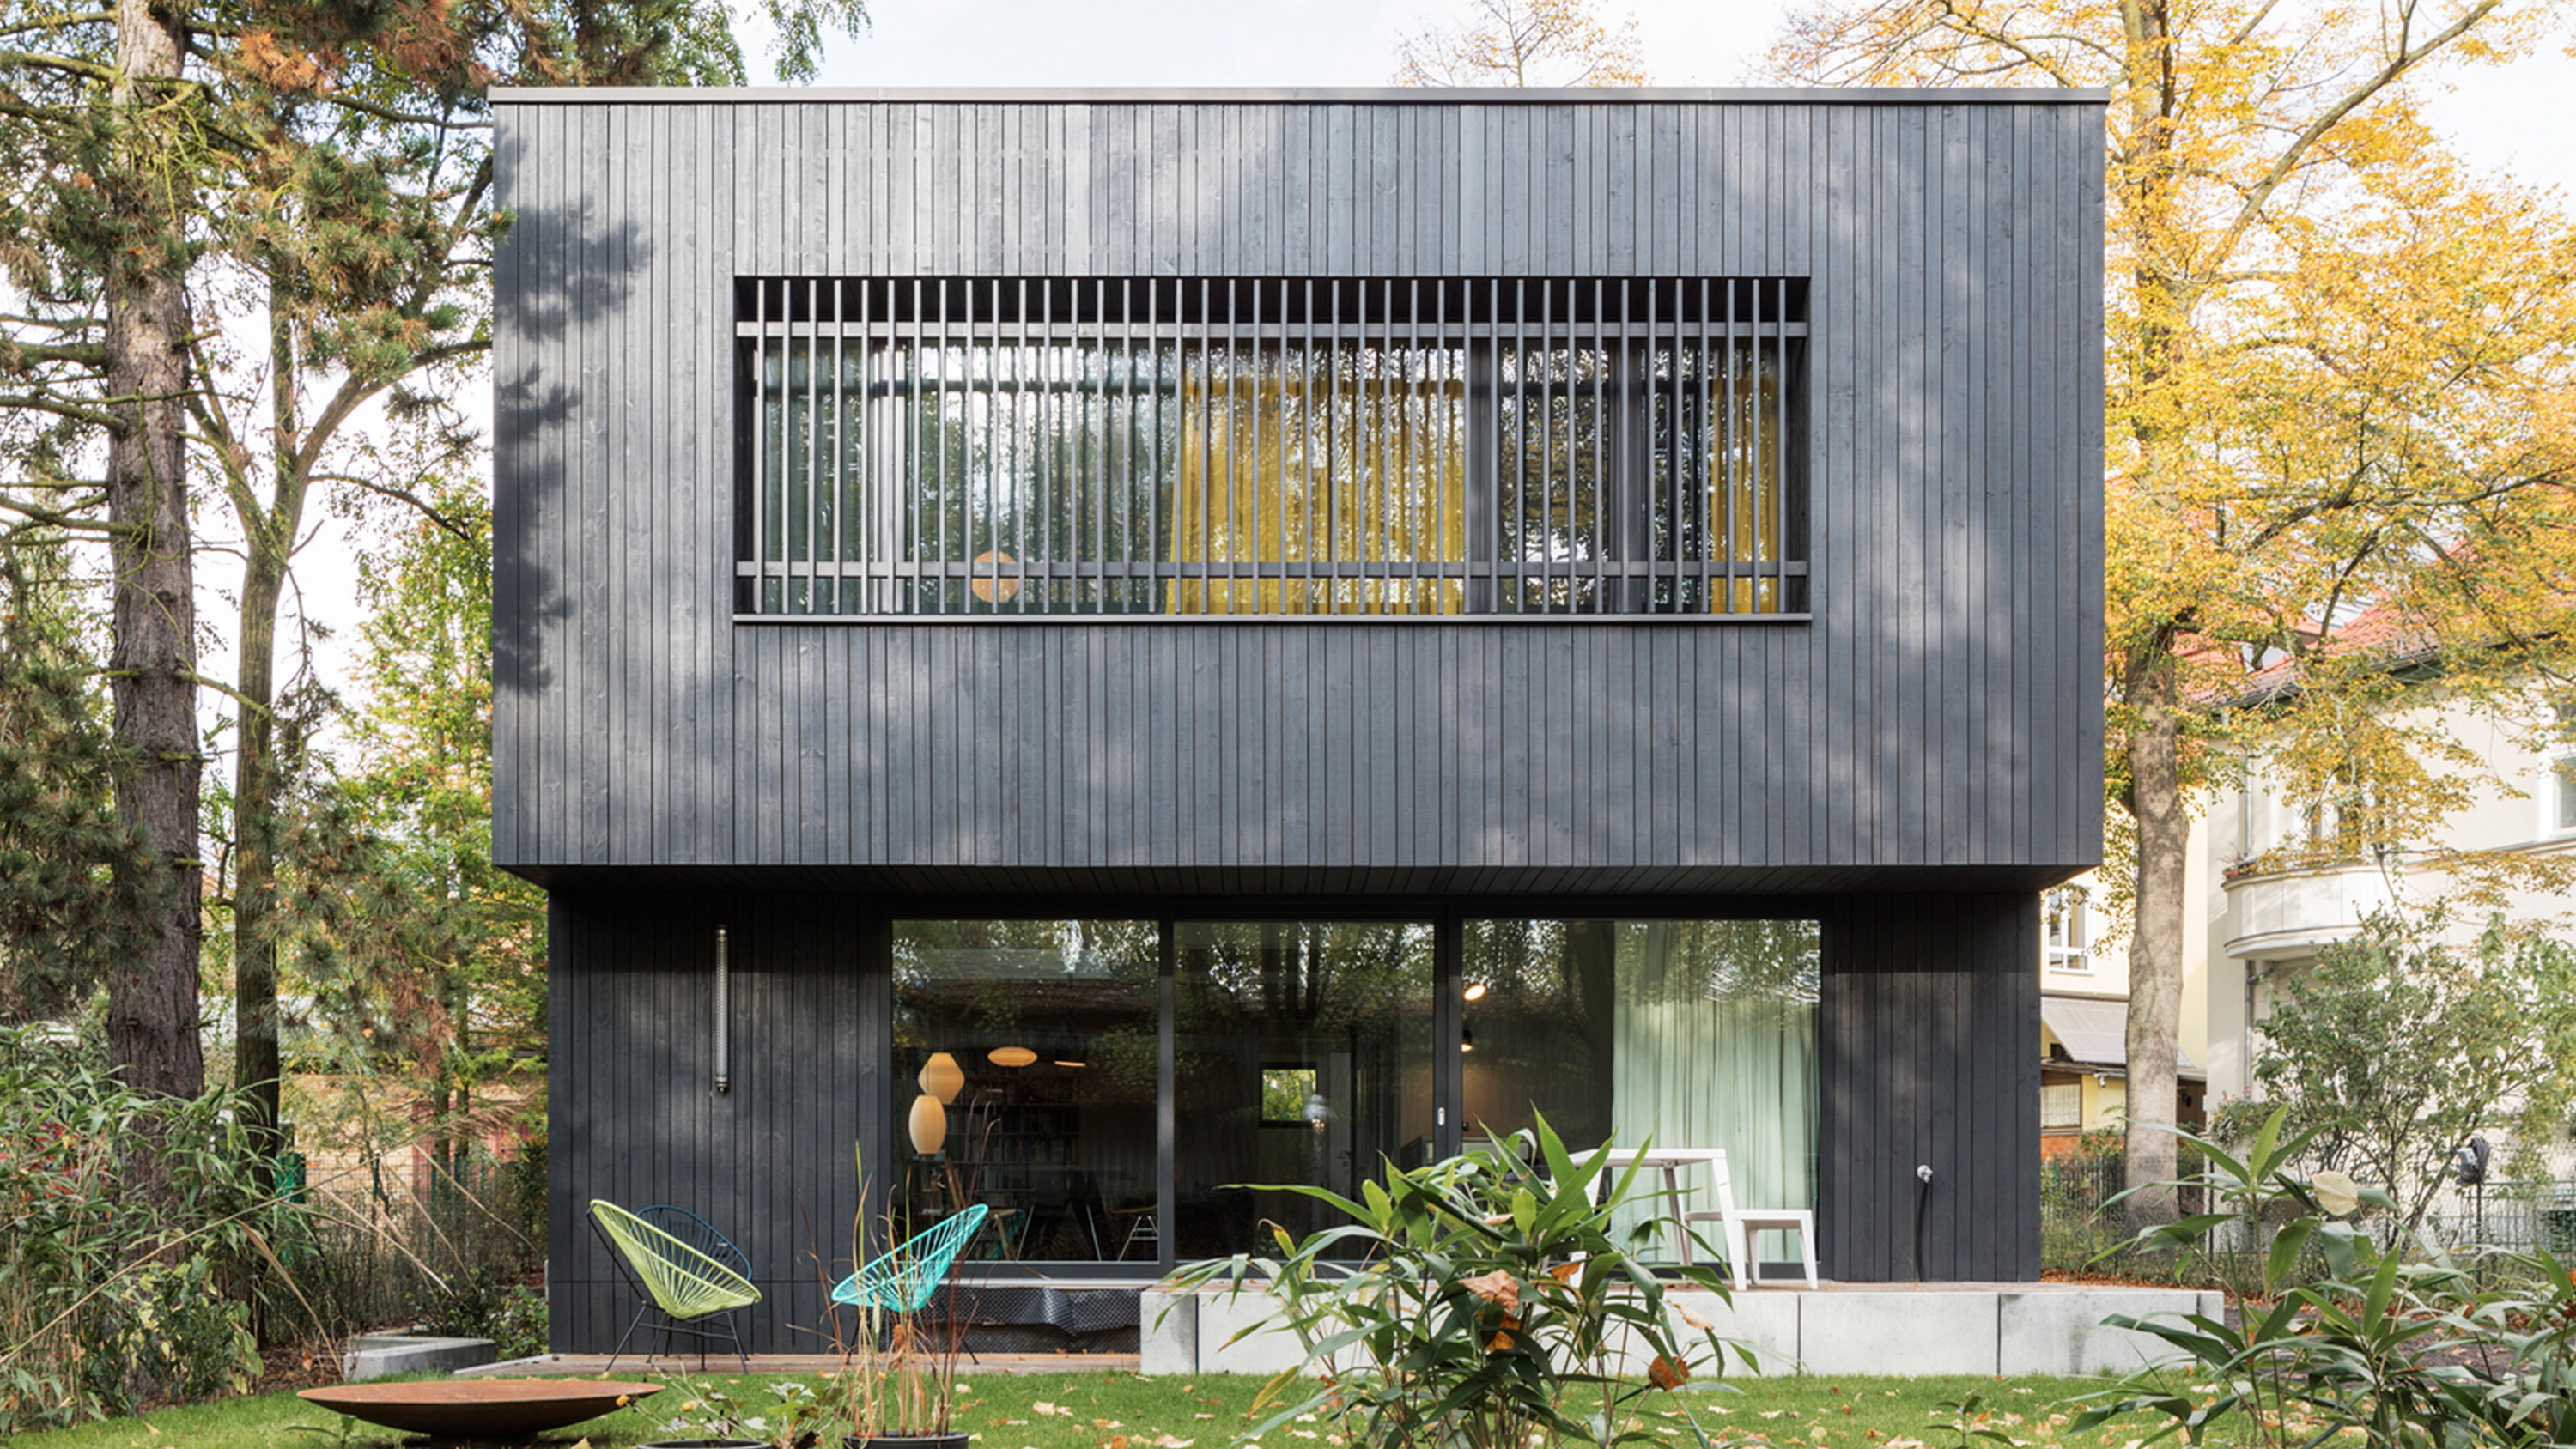 A28 House by SEHW Architektur